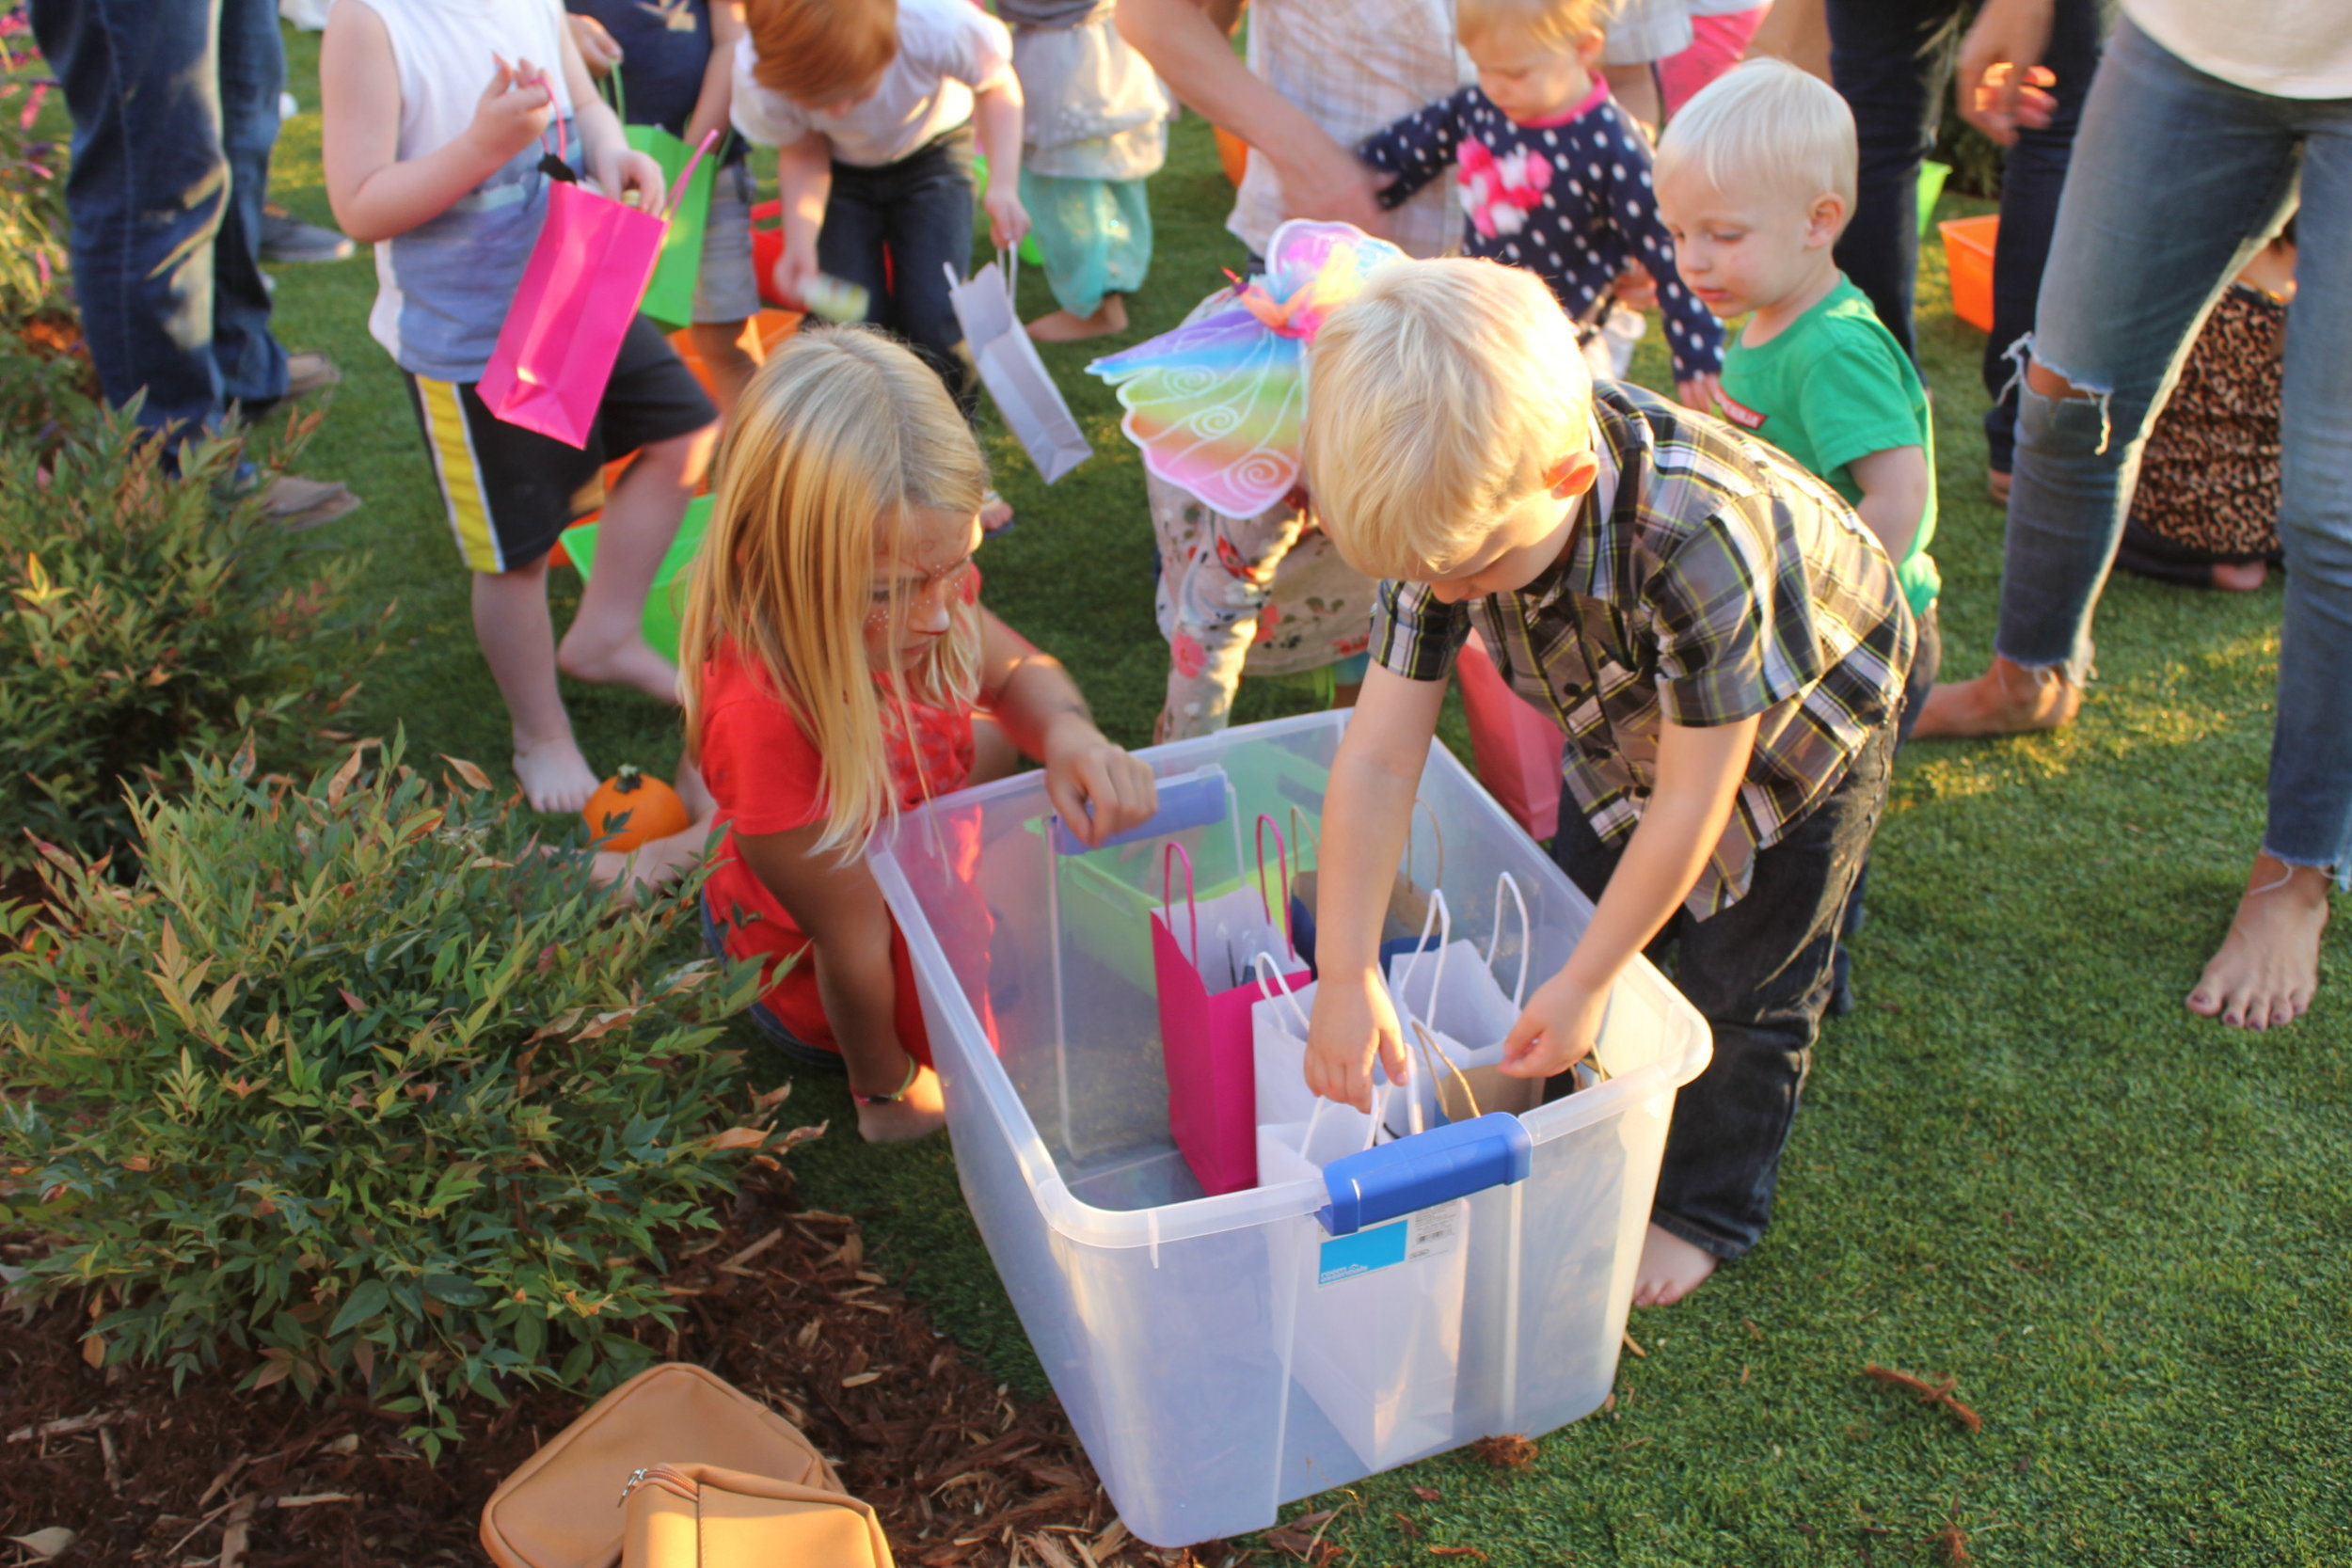 The bin was full of Care Kits that the children had assembled. The kits were donated to a family and community in Santa Rosa, CA.